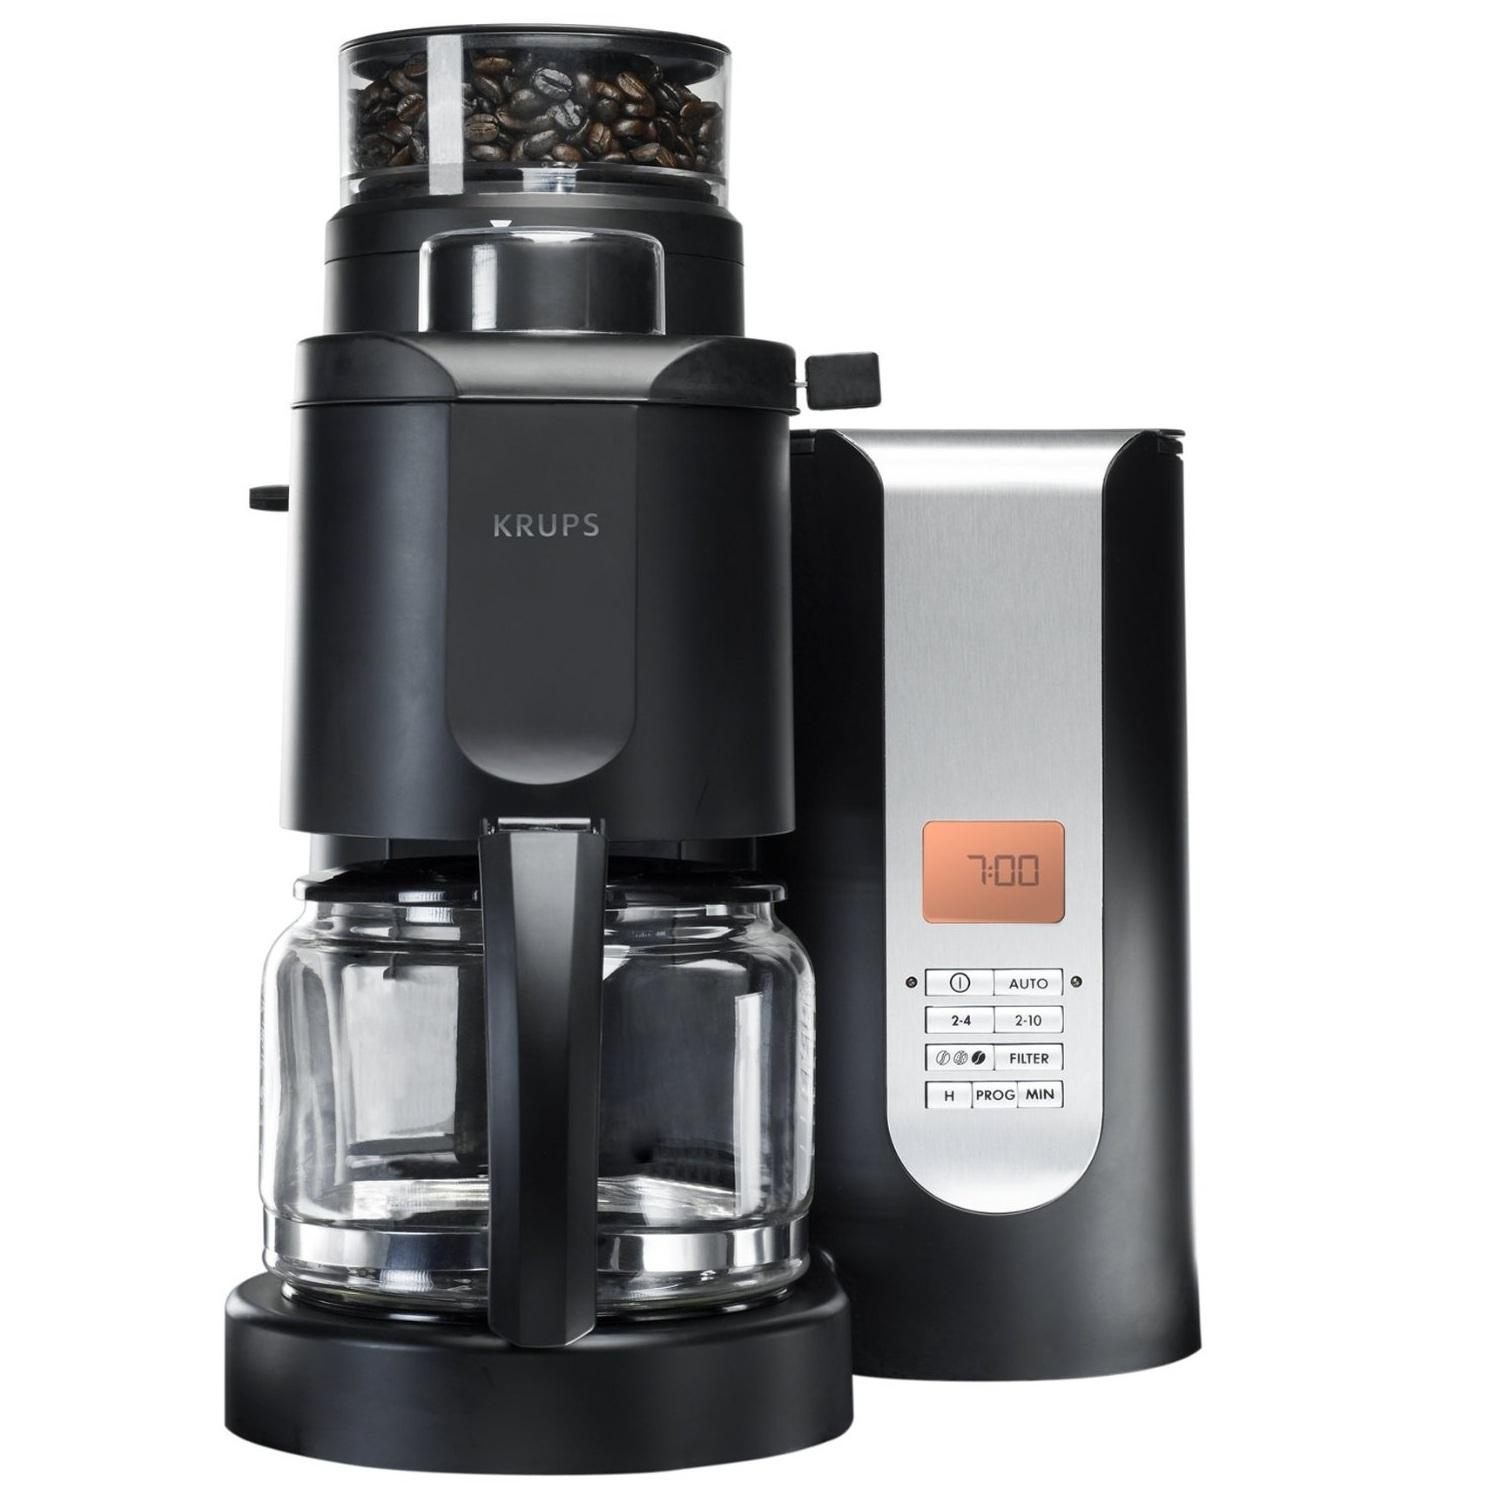 Automatic Grind And Brew Coffee Maker Amazon.com: KRUPS KM7005 Grind and Brew Coffee Maker with ...